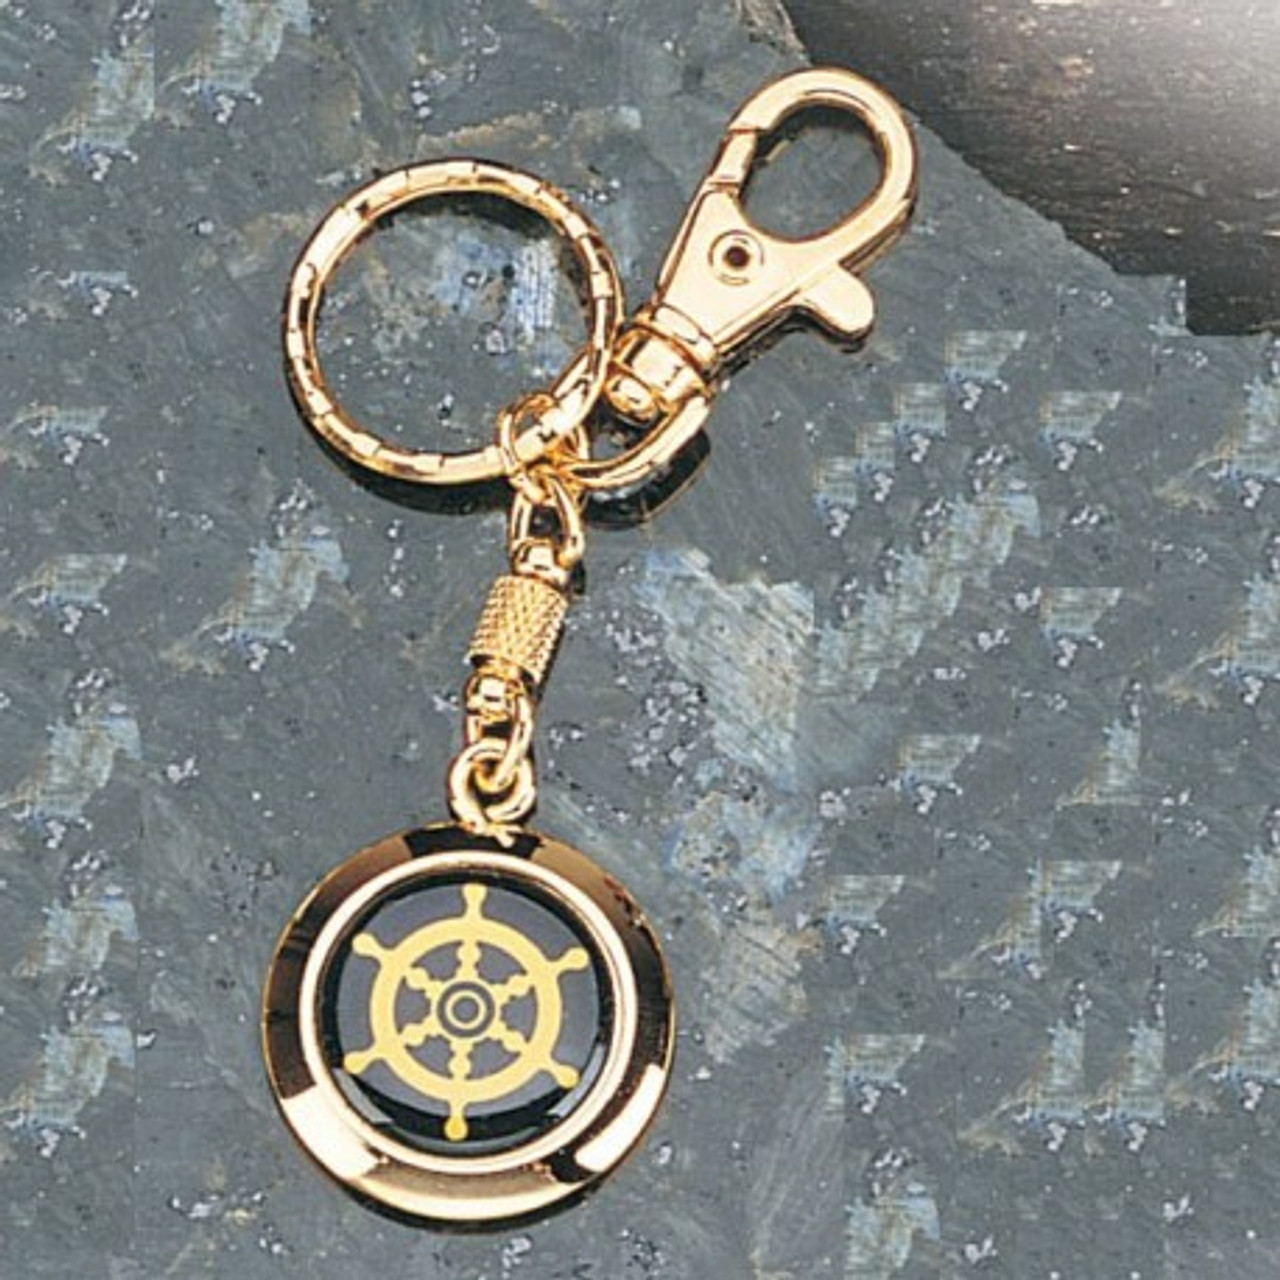 Brass Key Chain - Ship Wheel #2